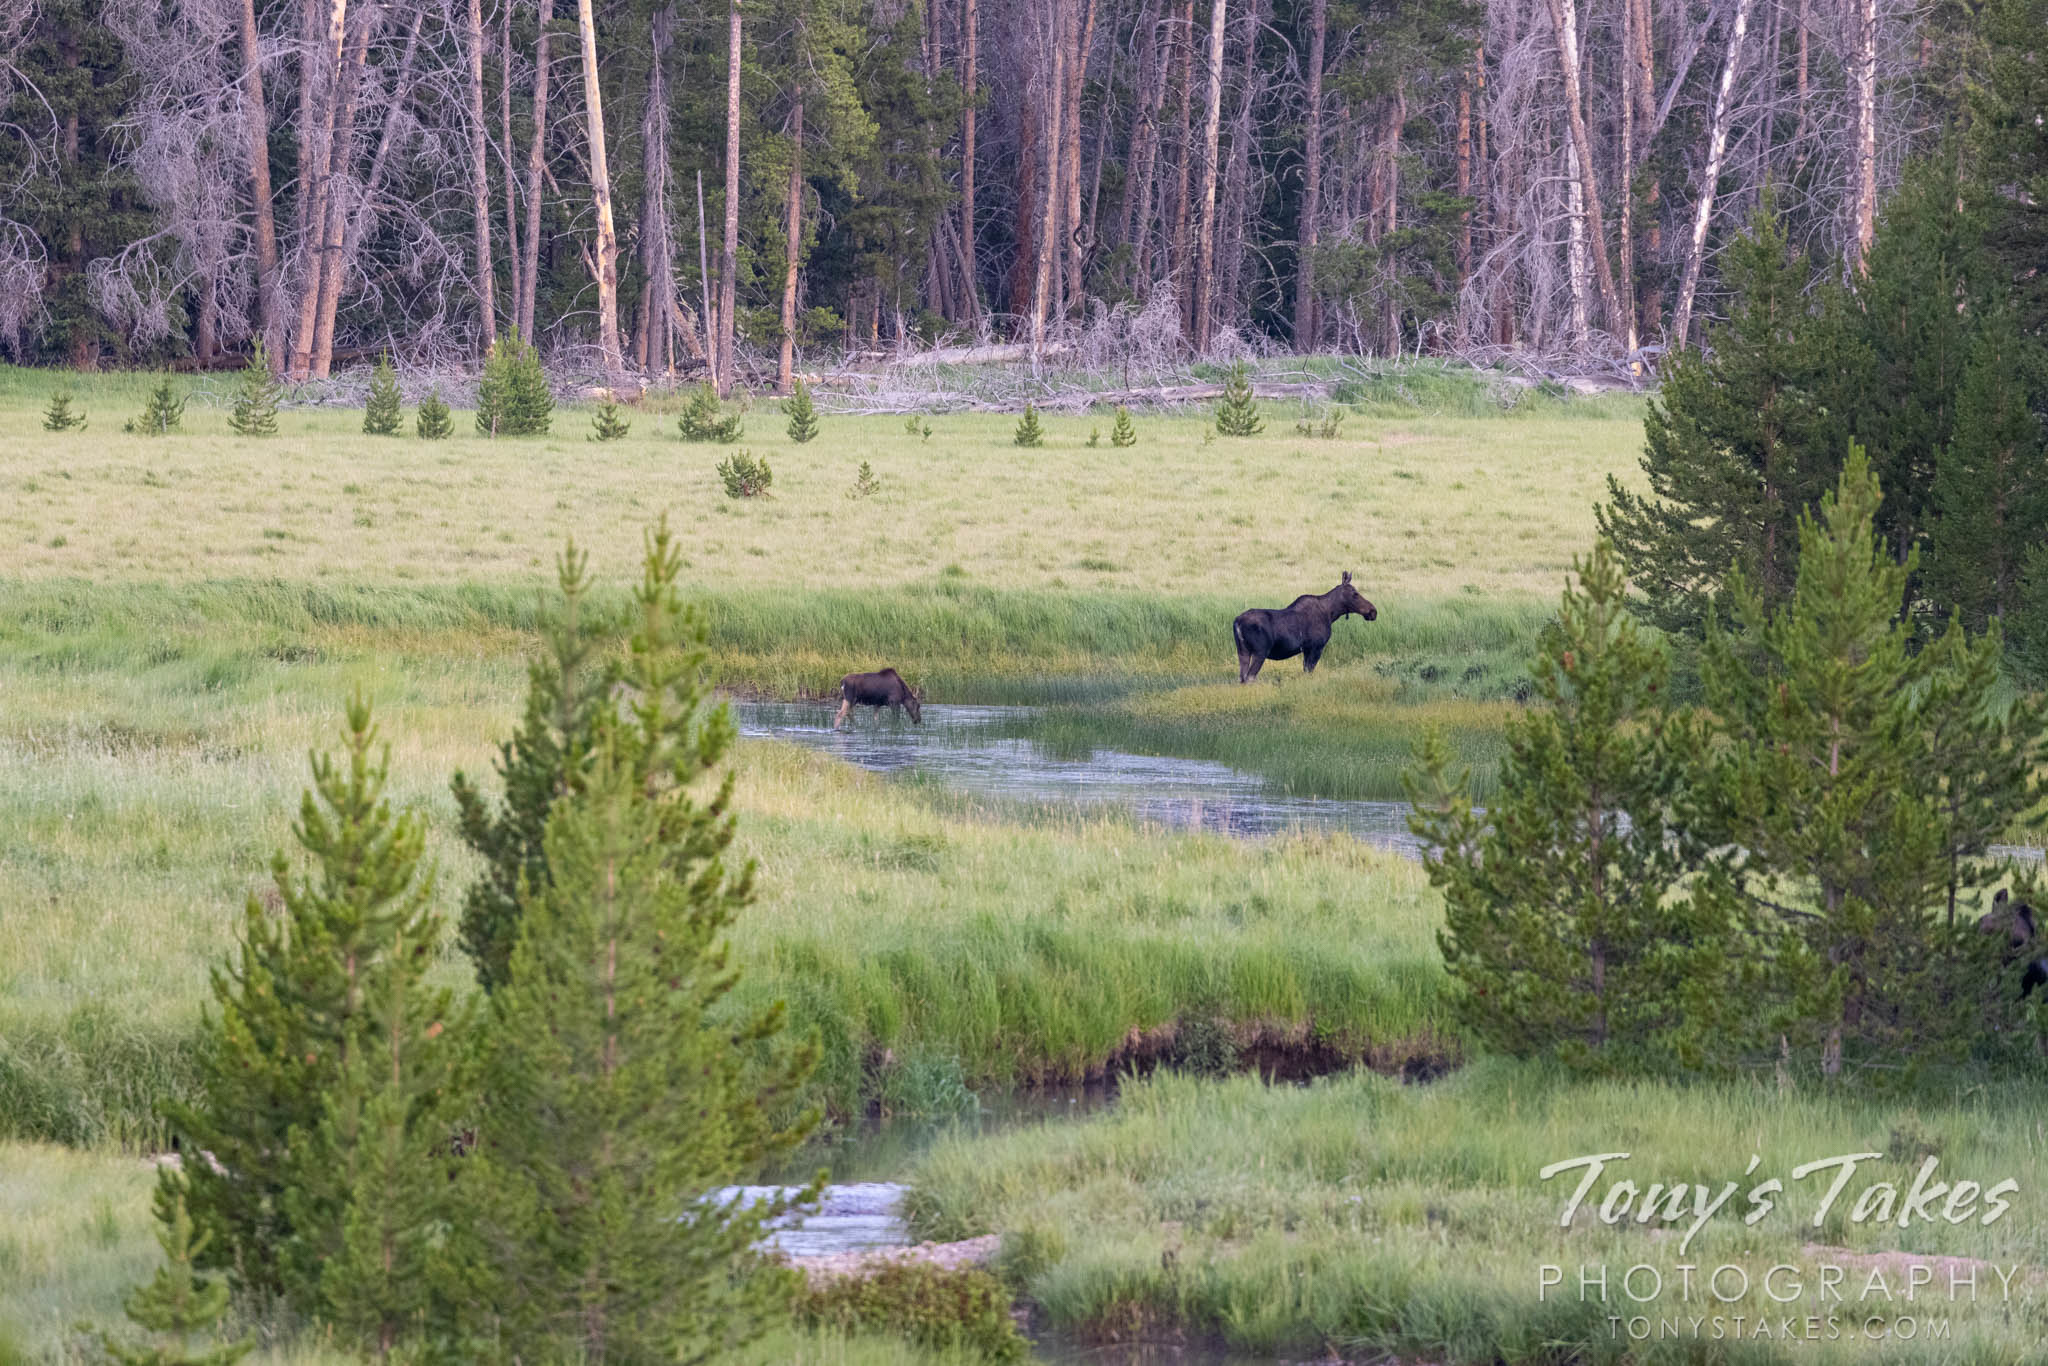 Moose cow and calf. Canon R5, Canon EF 100-400mm f/4.5-5.6L IS II USM @ 400mm, 1/400, f/8, ISO 4000.